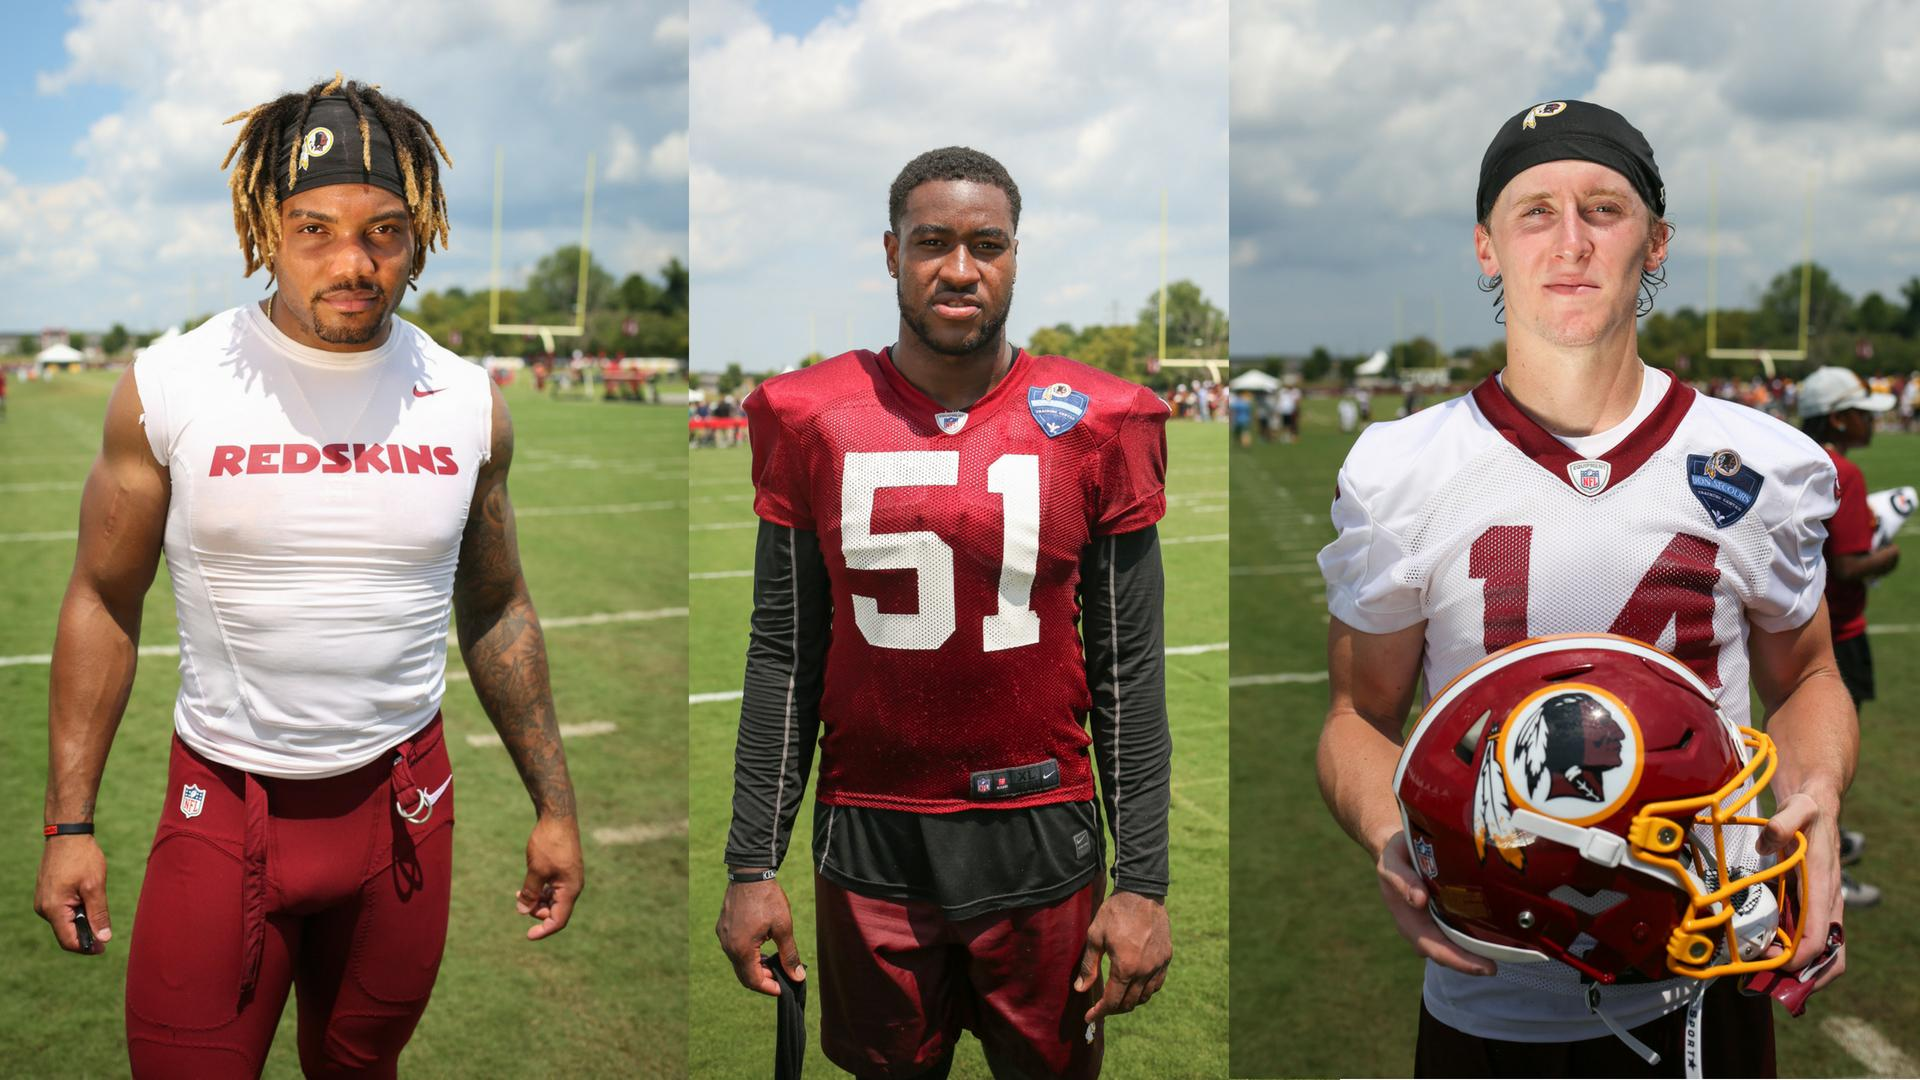 With football season just around the corner, it's time to start getting familiar with a few new numbers -- eight to be exact! In the offseason, the Redskins drafted eight rookies to their ranks, from their first round pick Da'Ron Payne to the last pick of the draft, Trey Quinn. We stopped by training camp one brutally hot day to get to know the gents a little better. (Images: Amanda Andrade-Rhoades/ DC Refined)